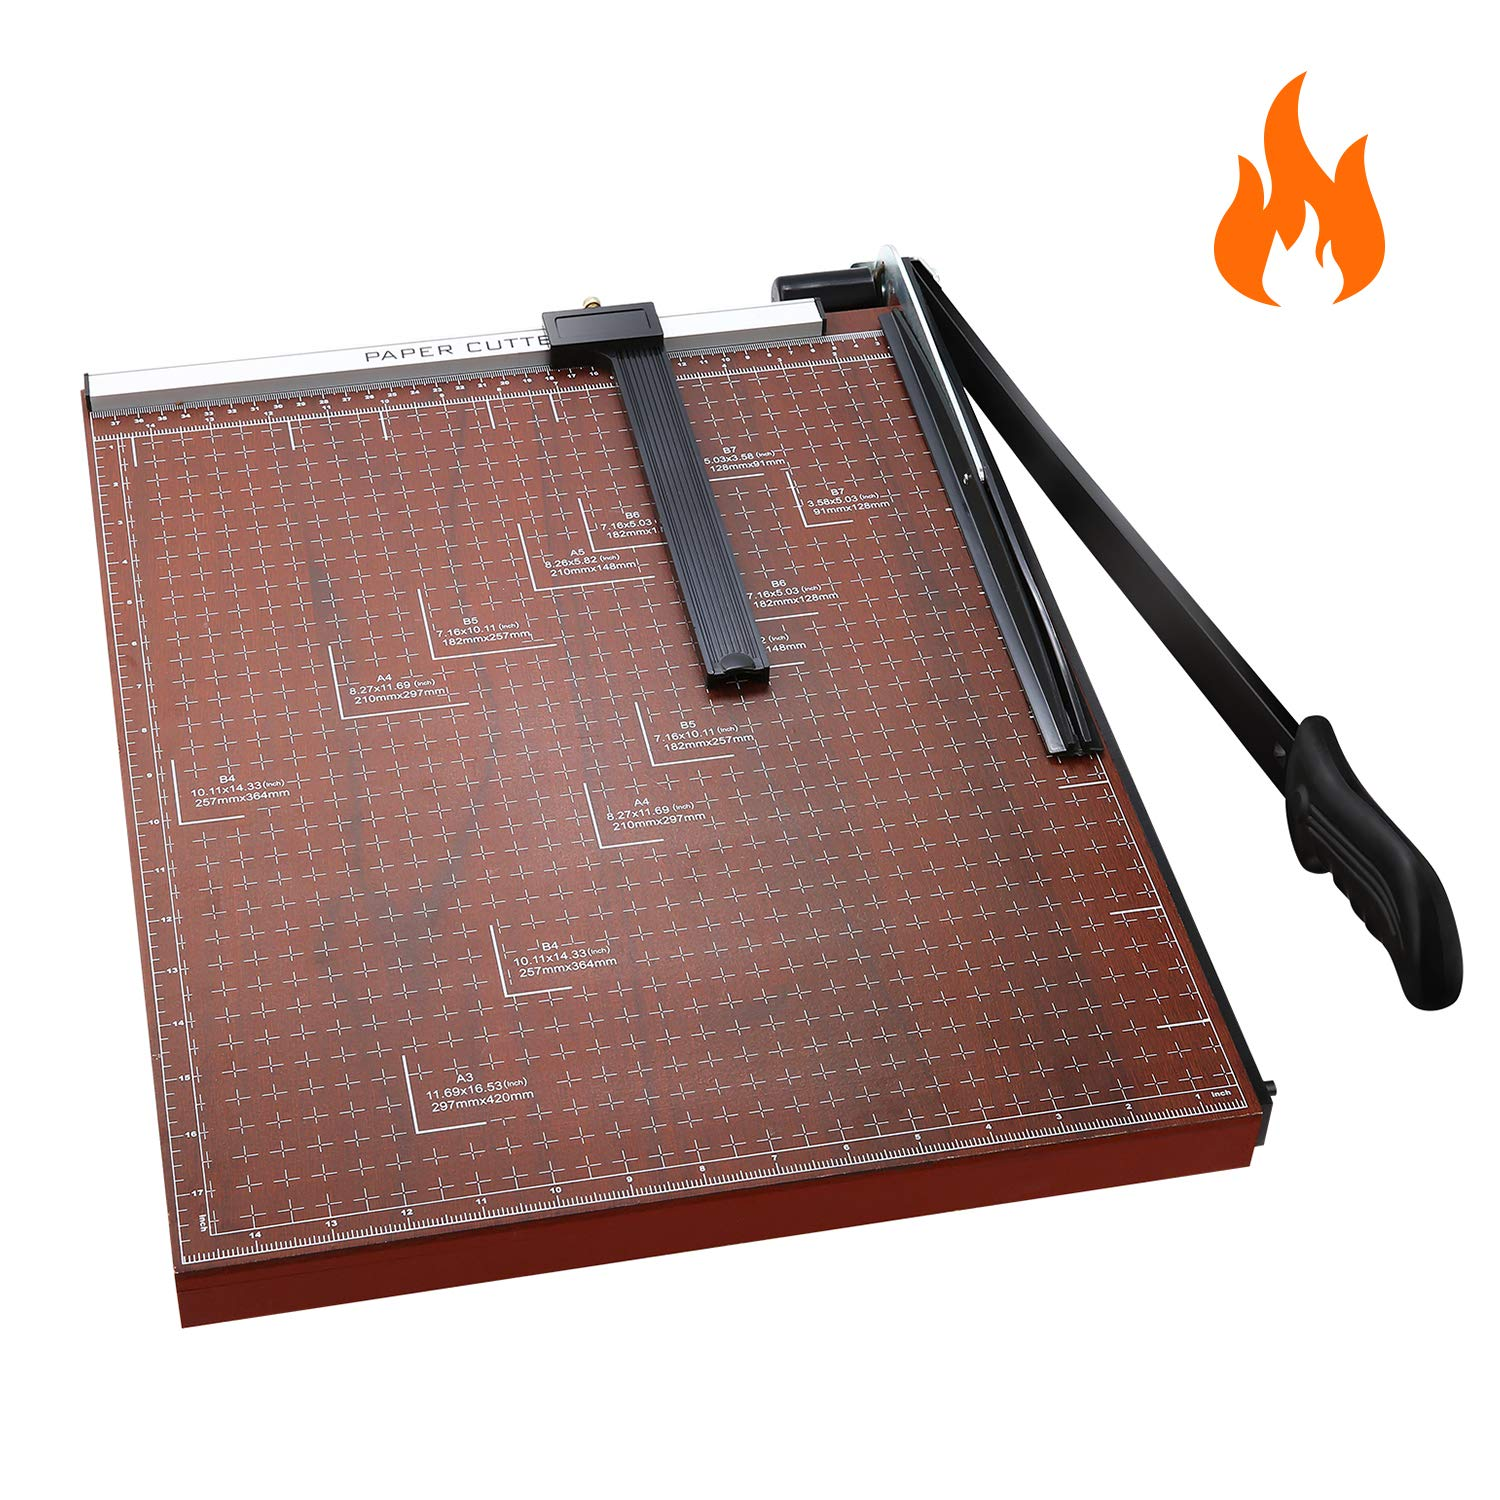 Paper Trimmer A3 Paper Cutter Heavy Duty Photo Guillotine Craft Machine 12 inch Cut Length/A3-Red/18.9'' x 15.0'' by Jackoering